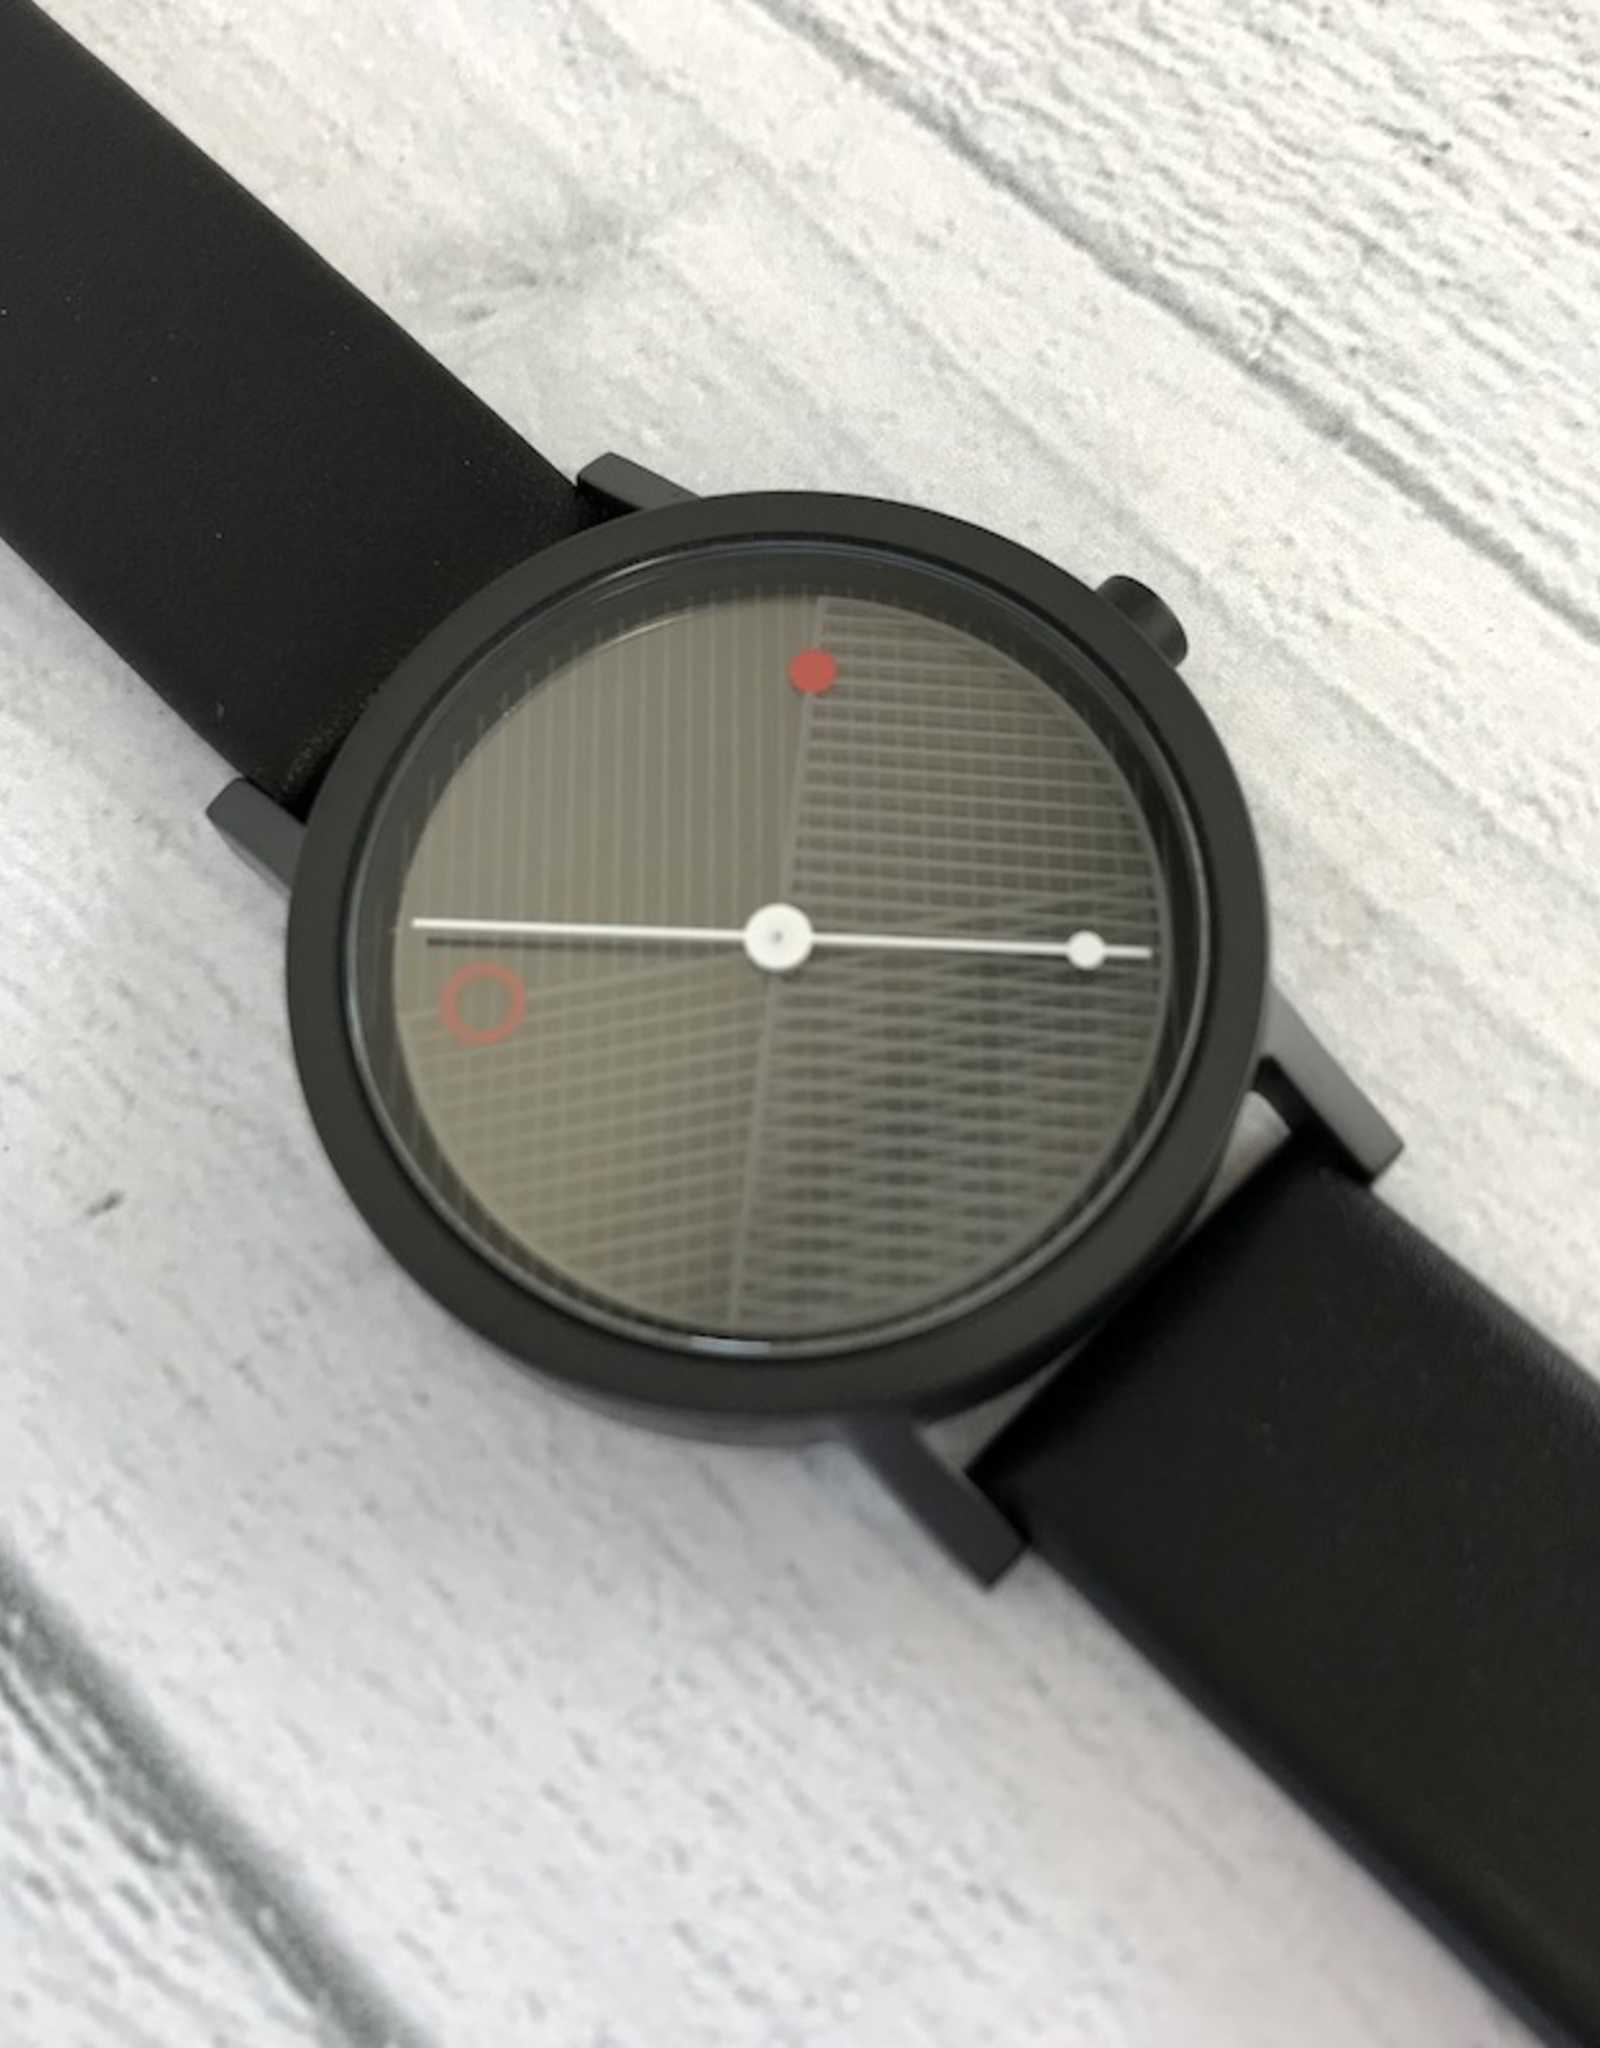 Hatch Black Watch Cross Pattern, Black Face with Black Leather Band